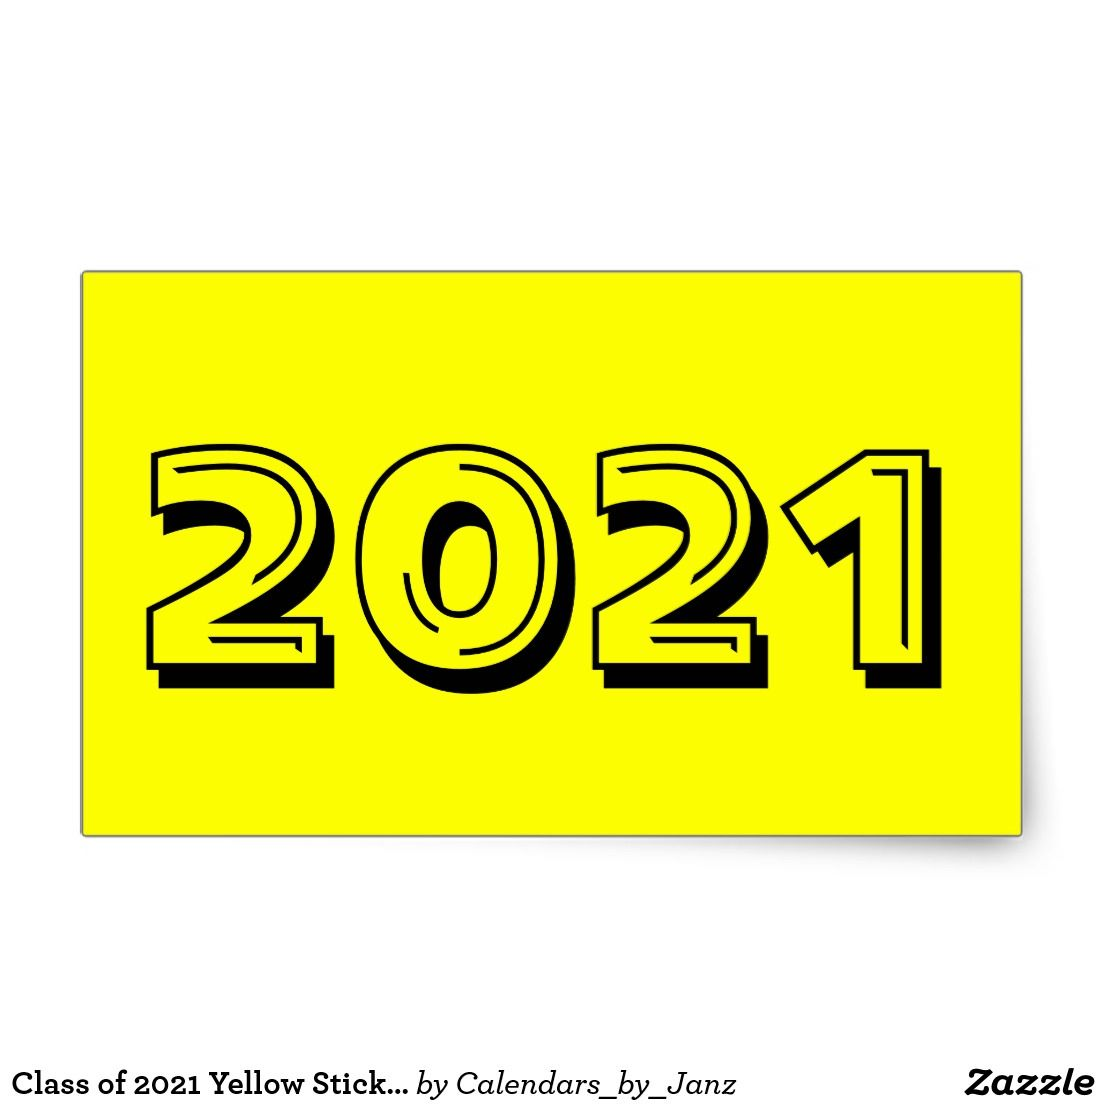 Class of 2021 yellow sticker by janz in 2021